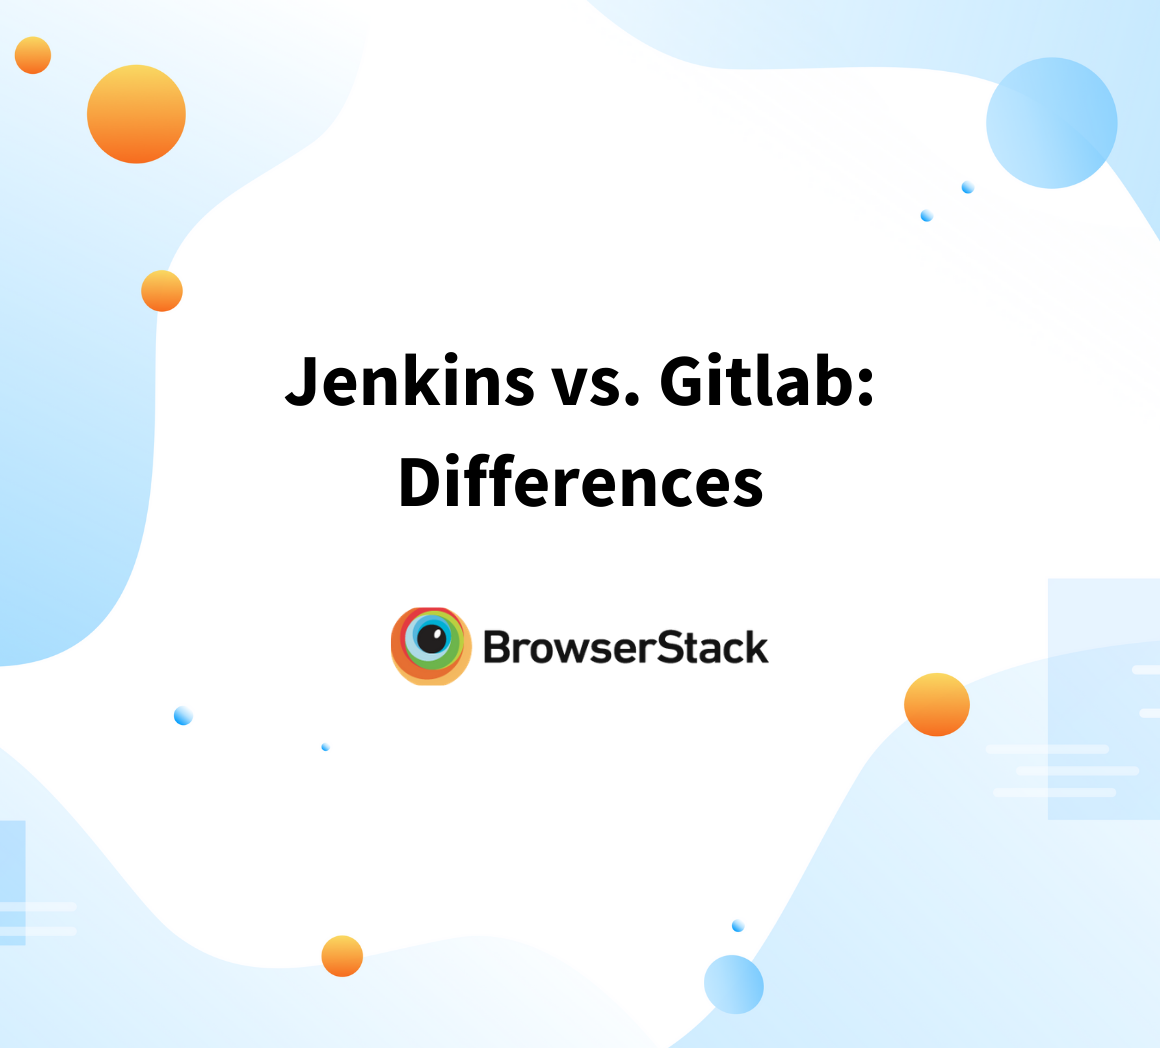 Jenkins vs Gitlab: Differences